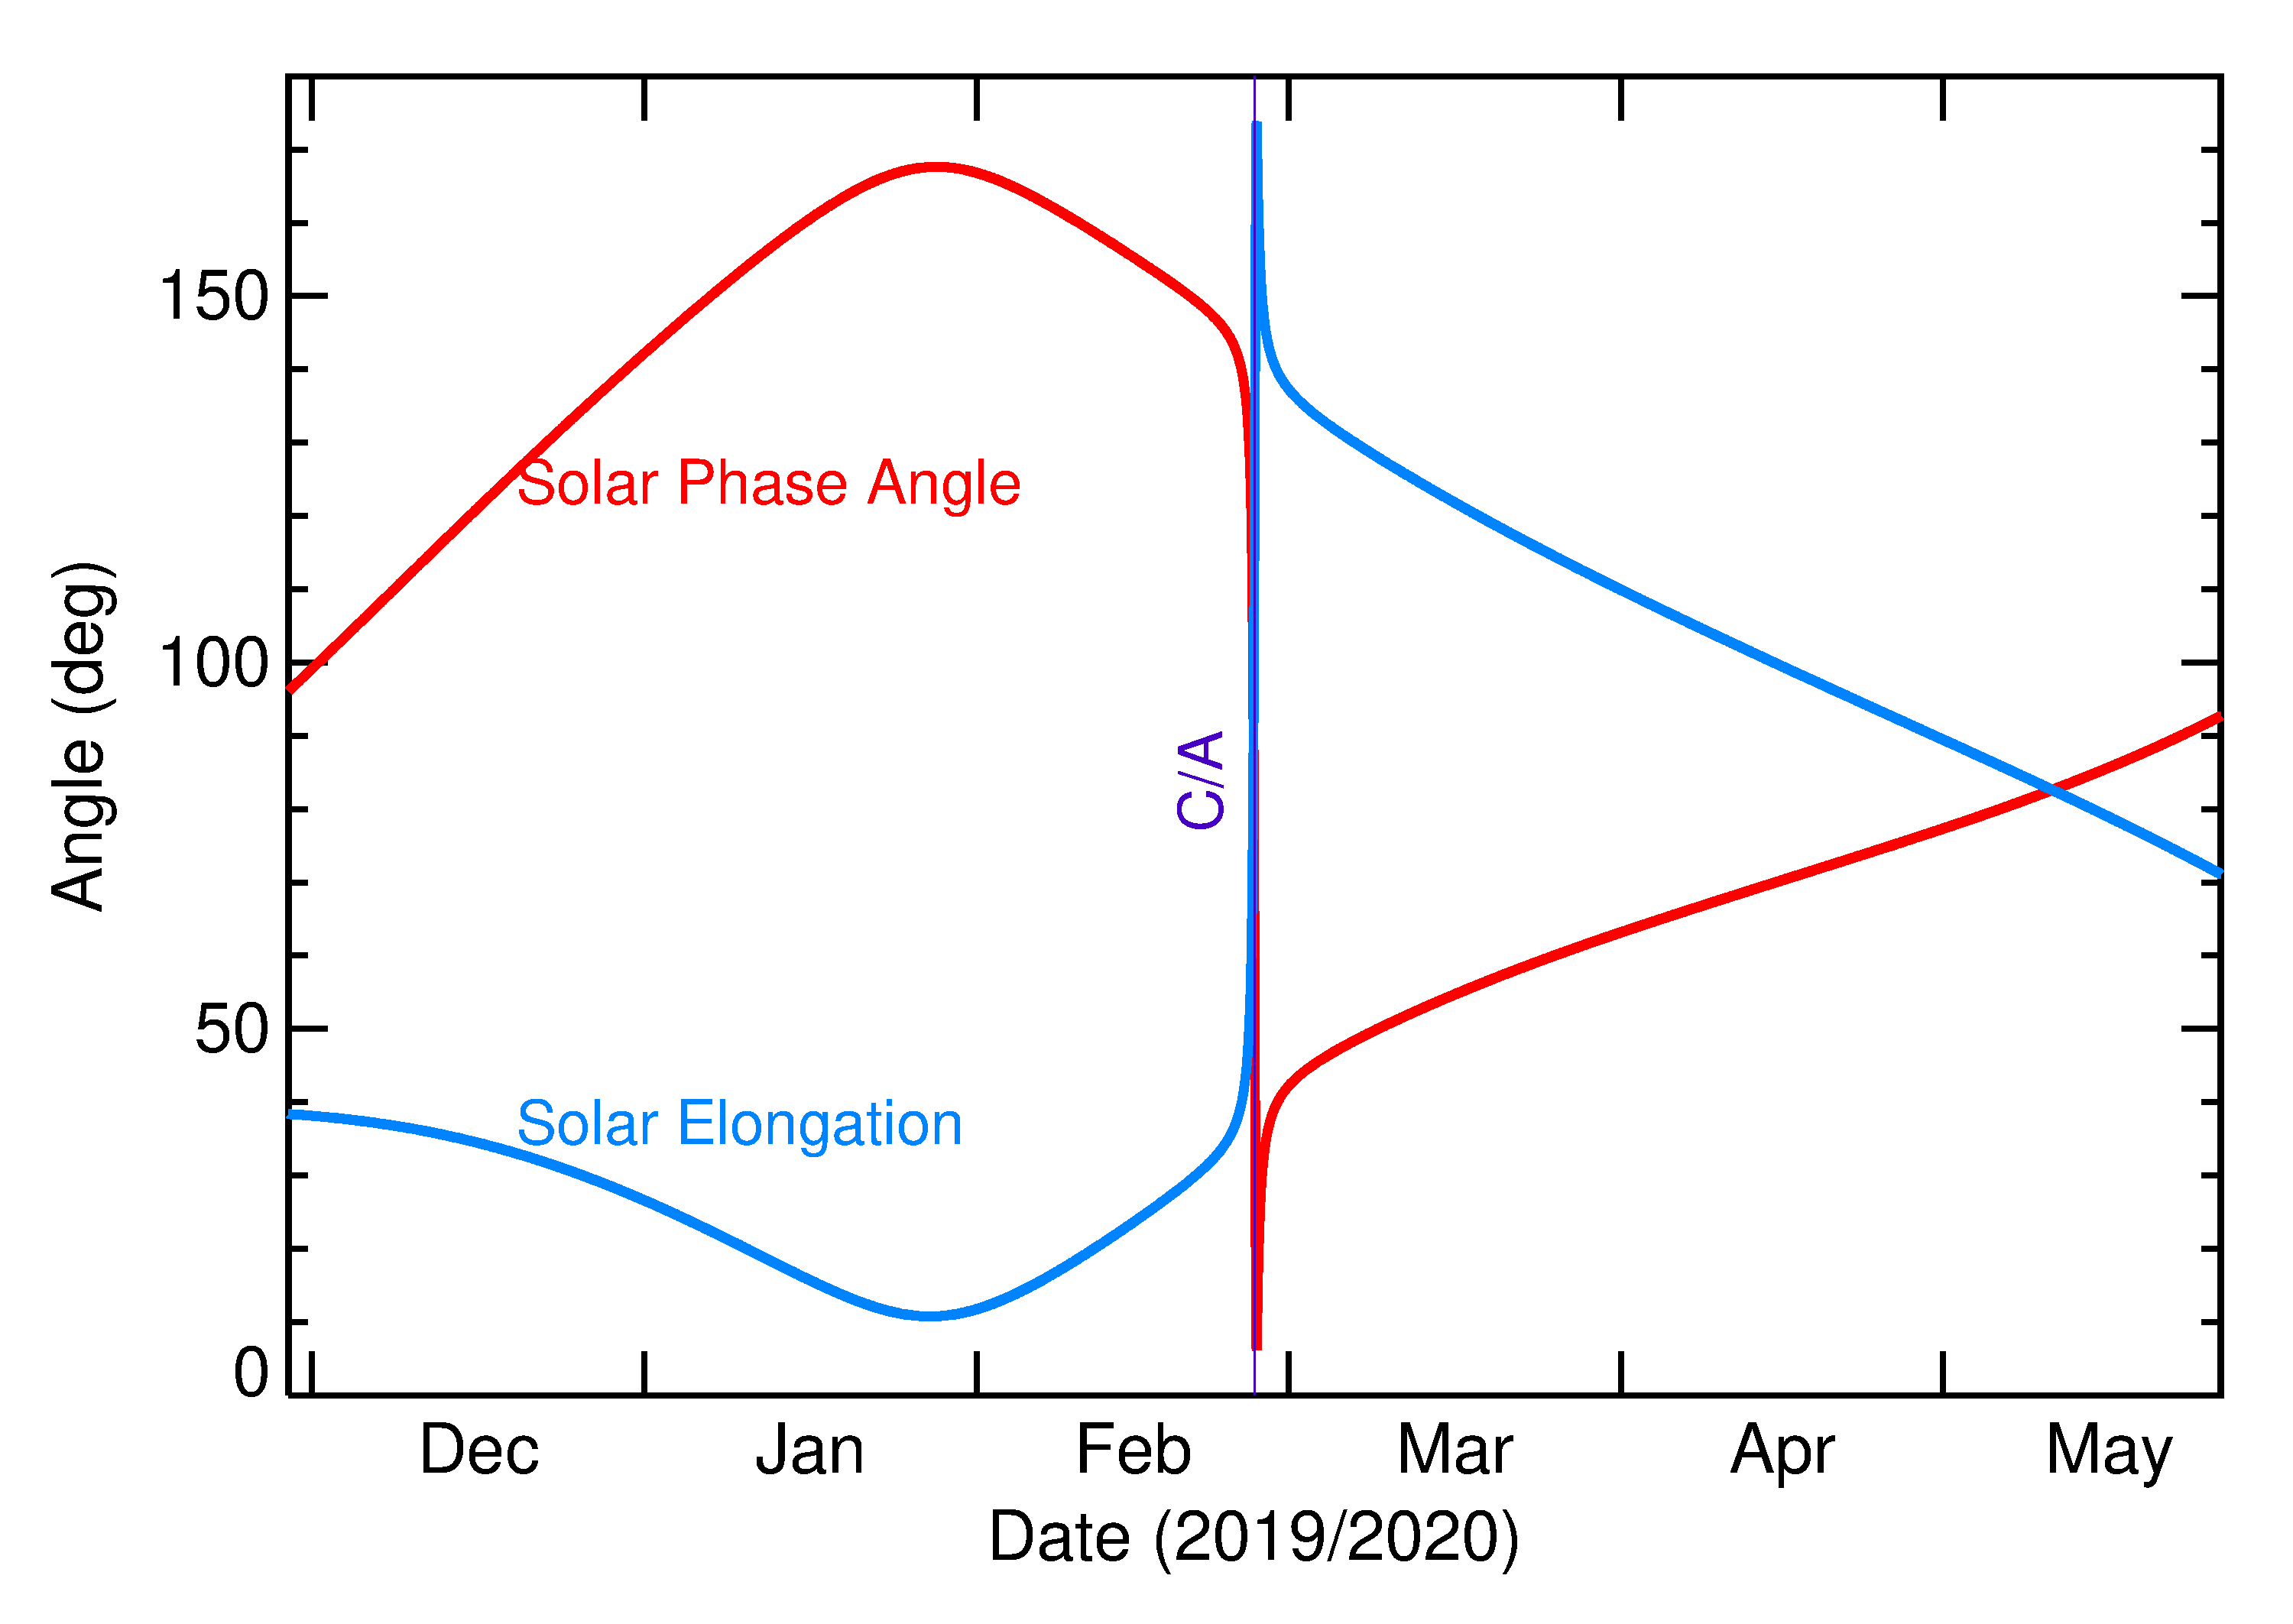 Solar Elongation and Solar Phase Angle of 2020 DR4 in the months around closest approach